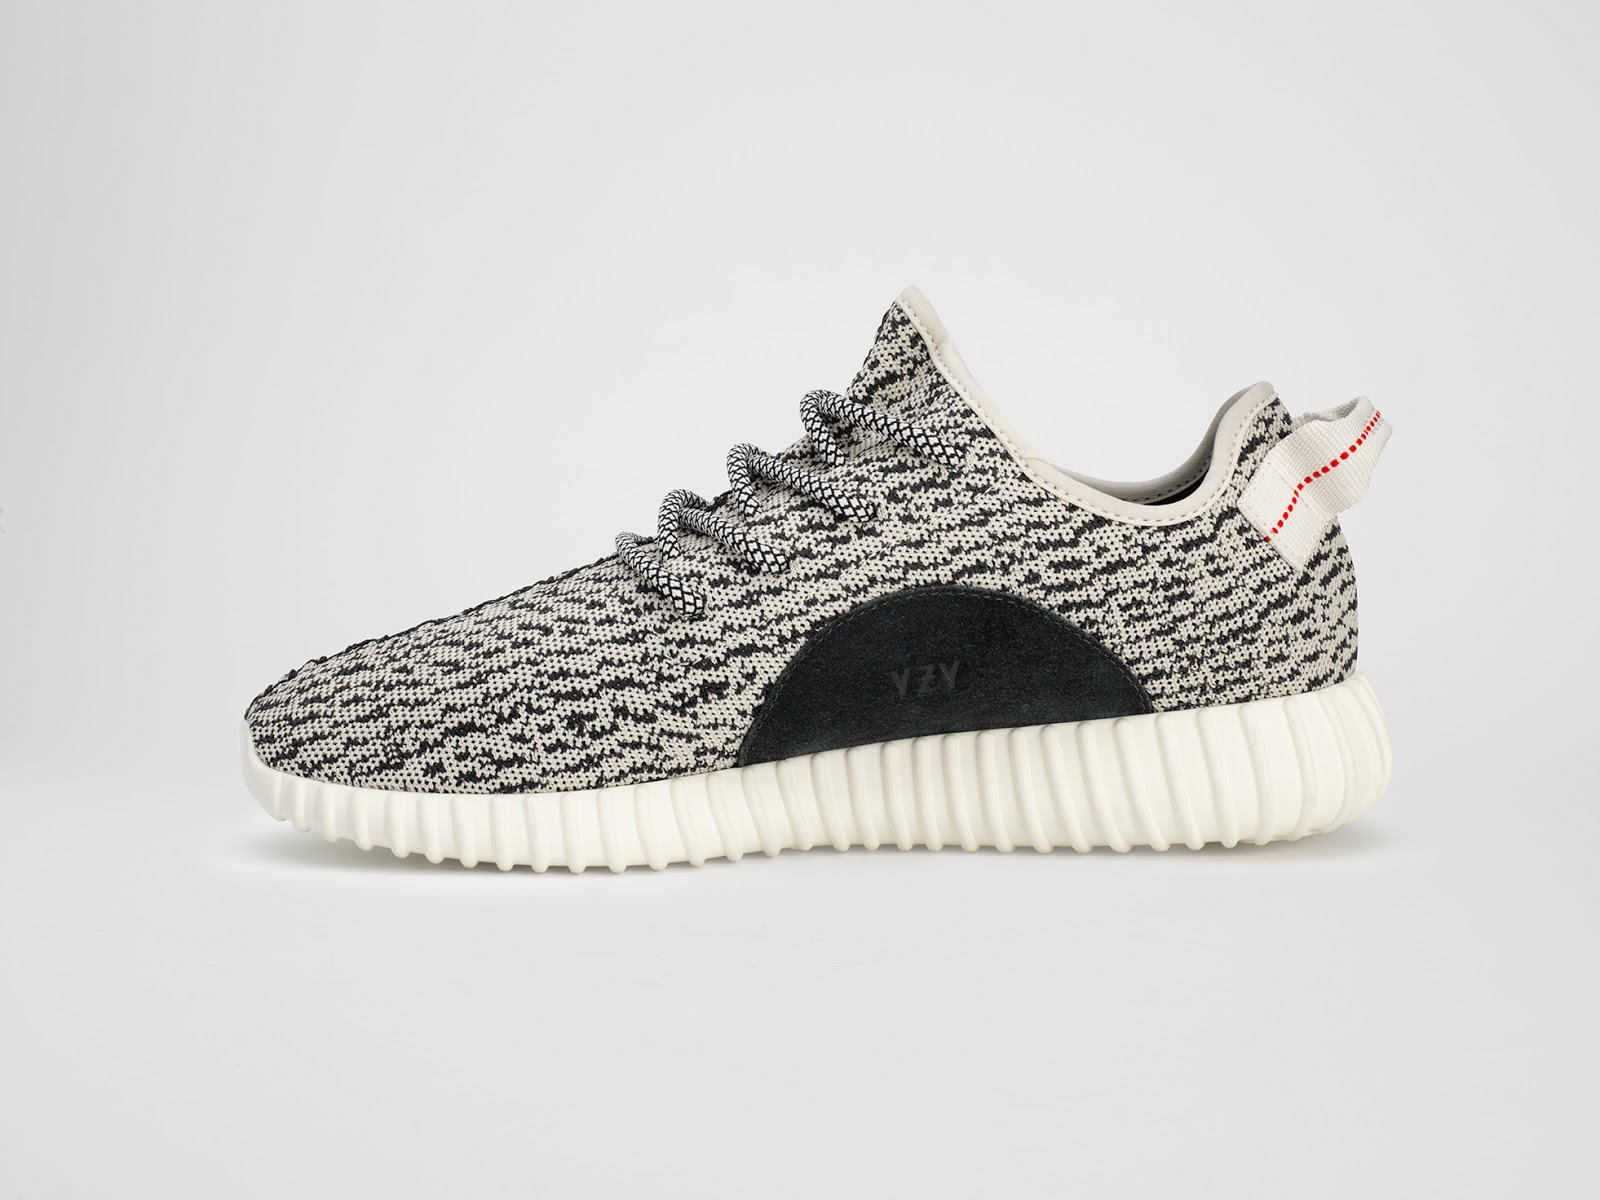 Adidas Yeezy Boost 350 Pas Cher Kanye West